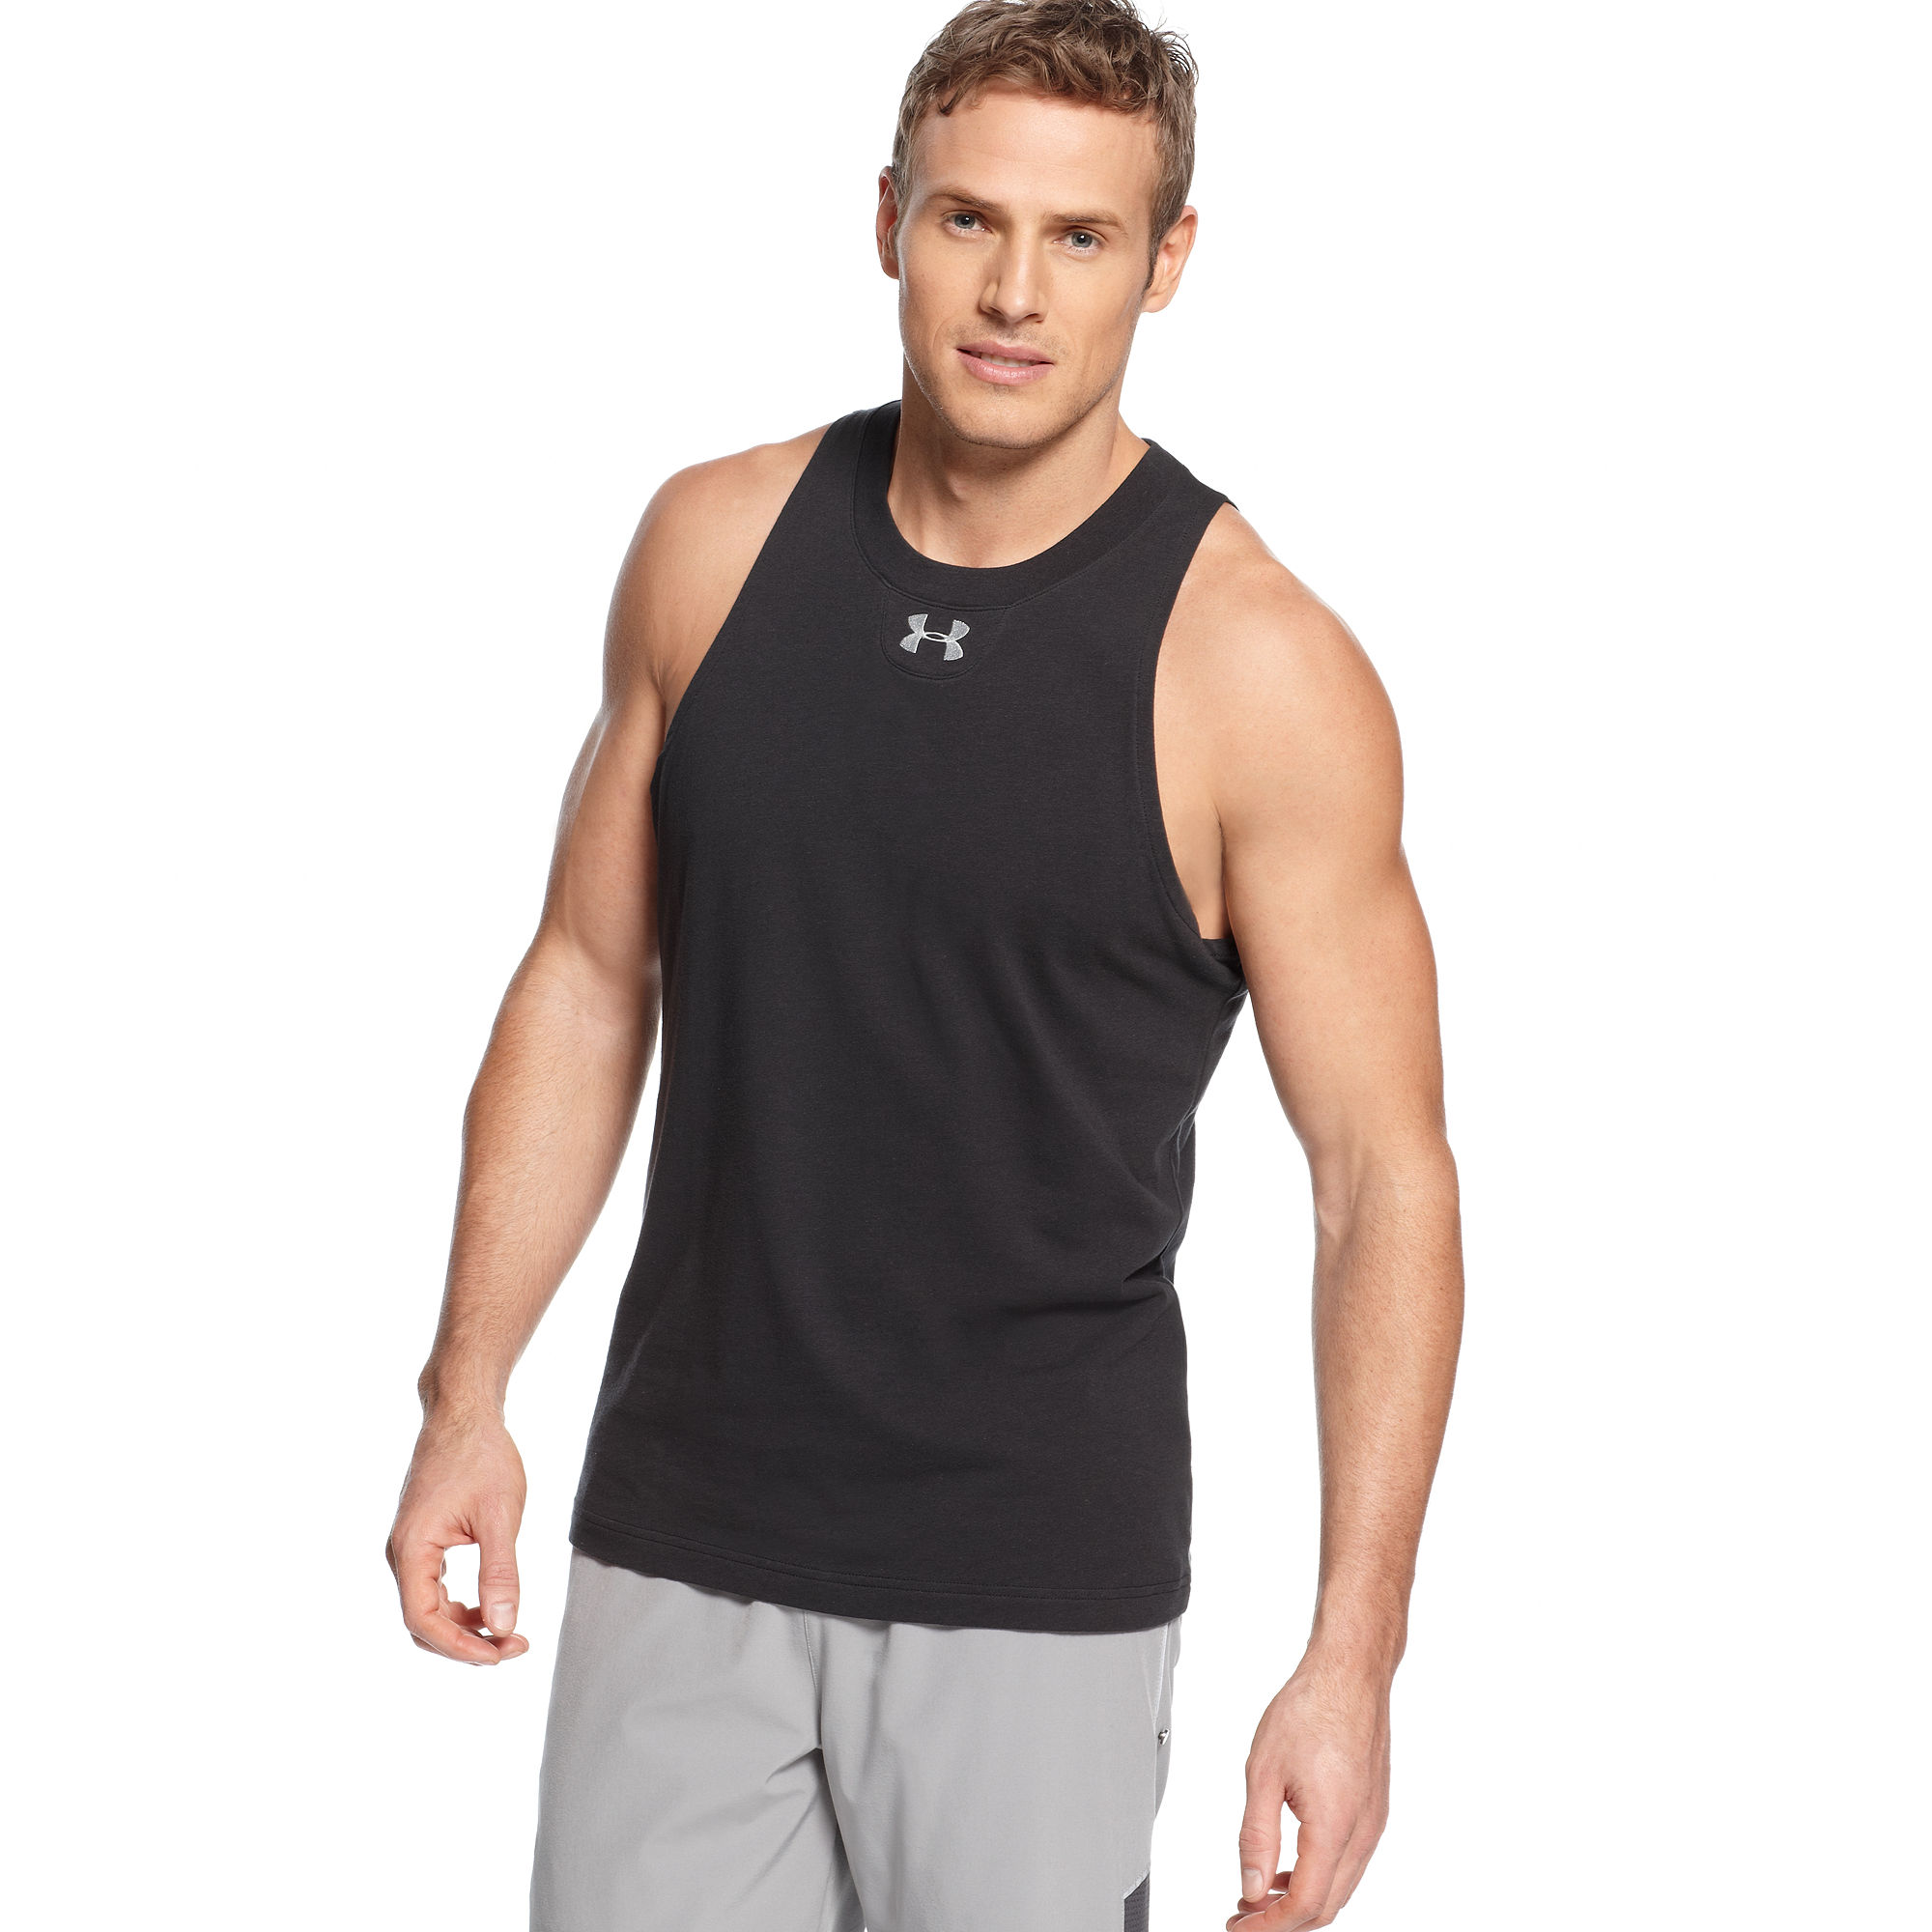 under armour charged cotton tank top in gray for men lyst. Black Bedroom Furniture Sets. Home Design Ideas